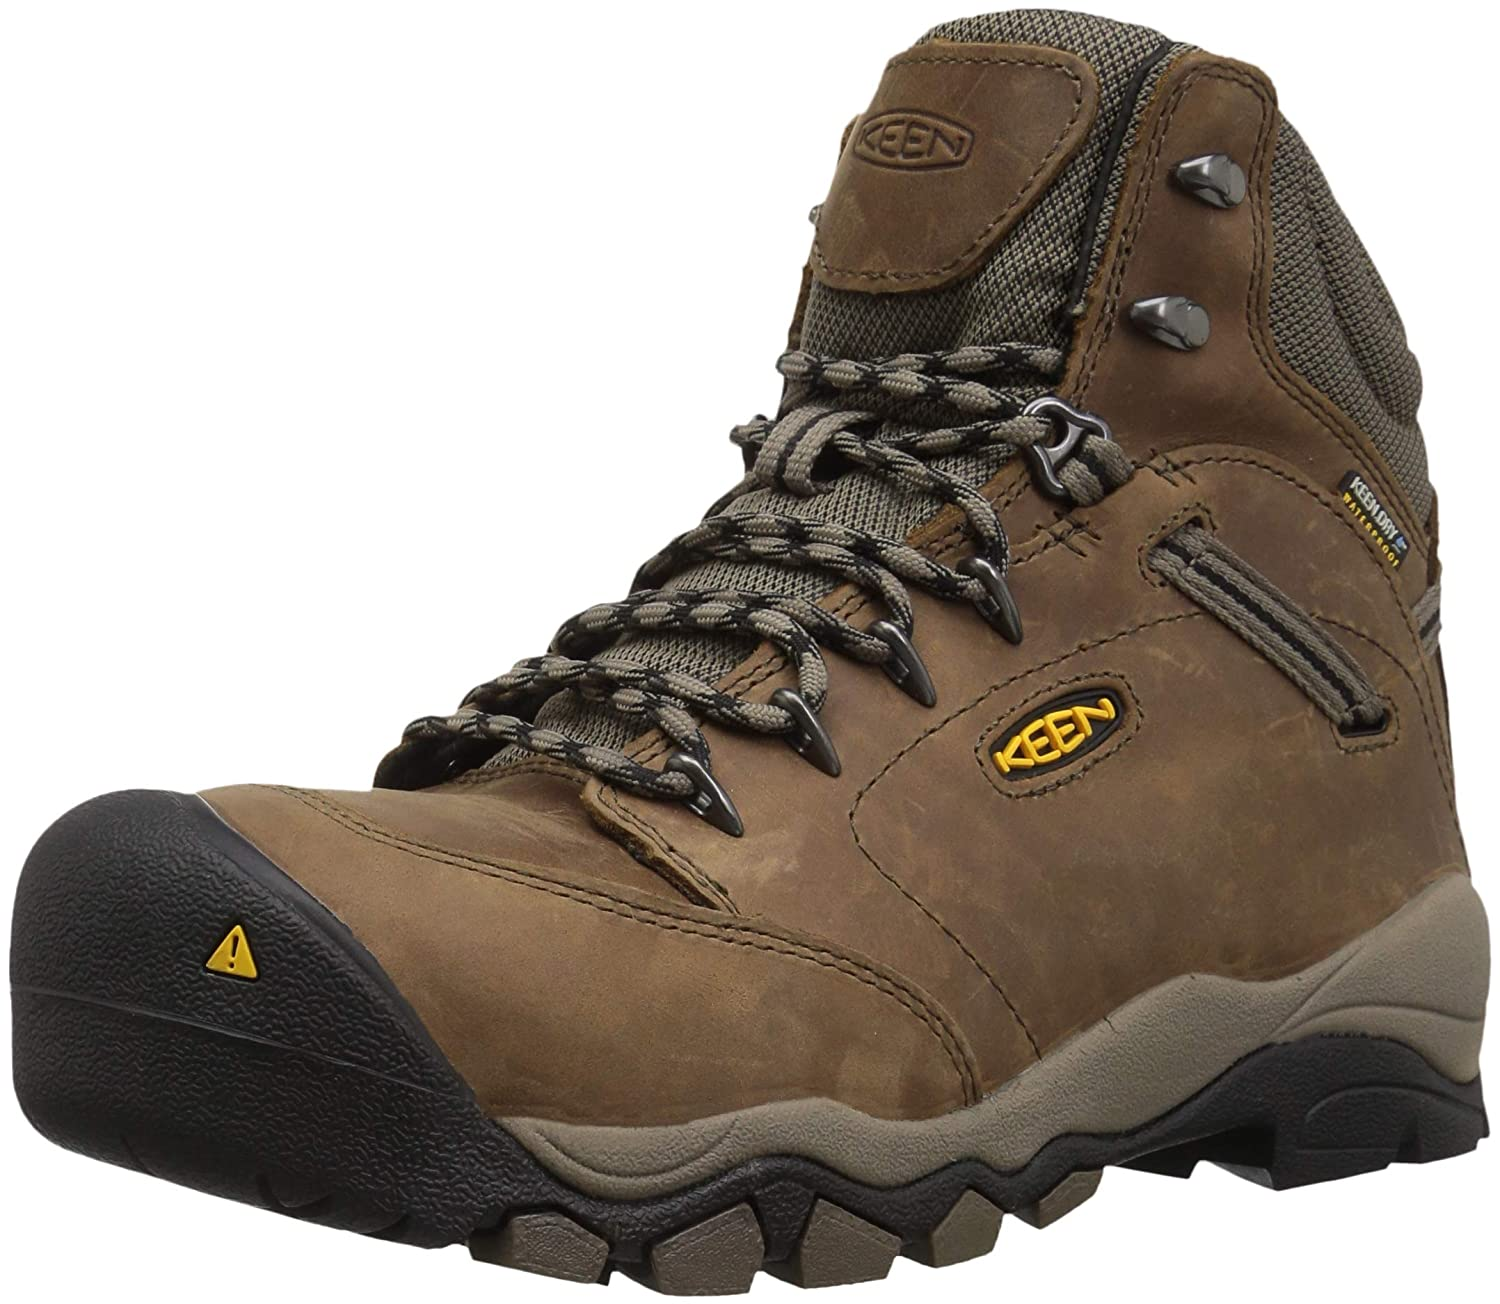 Keen Utility Women's Canby AT Waterproof Industrial and Construction Shoe CANBY AT WP-W